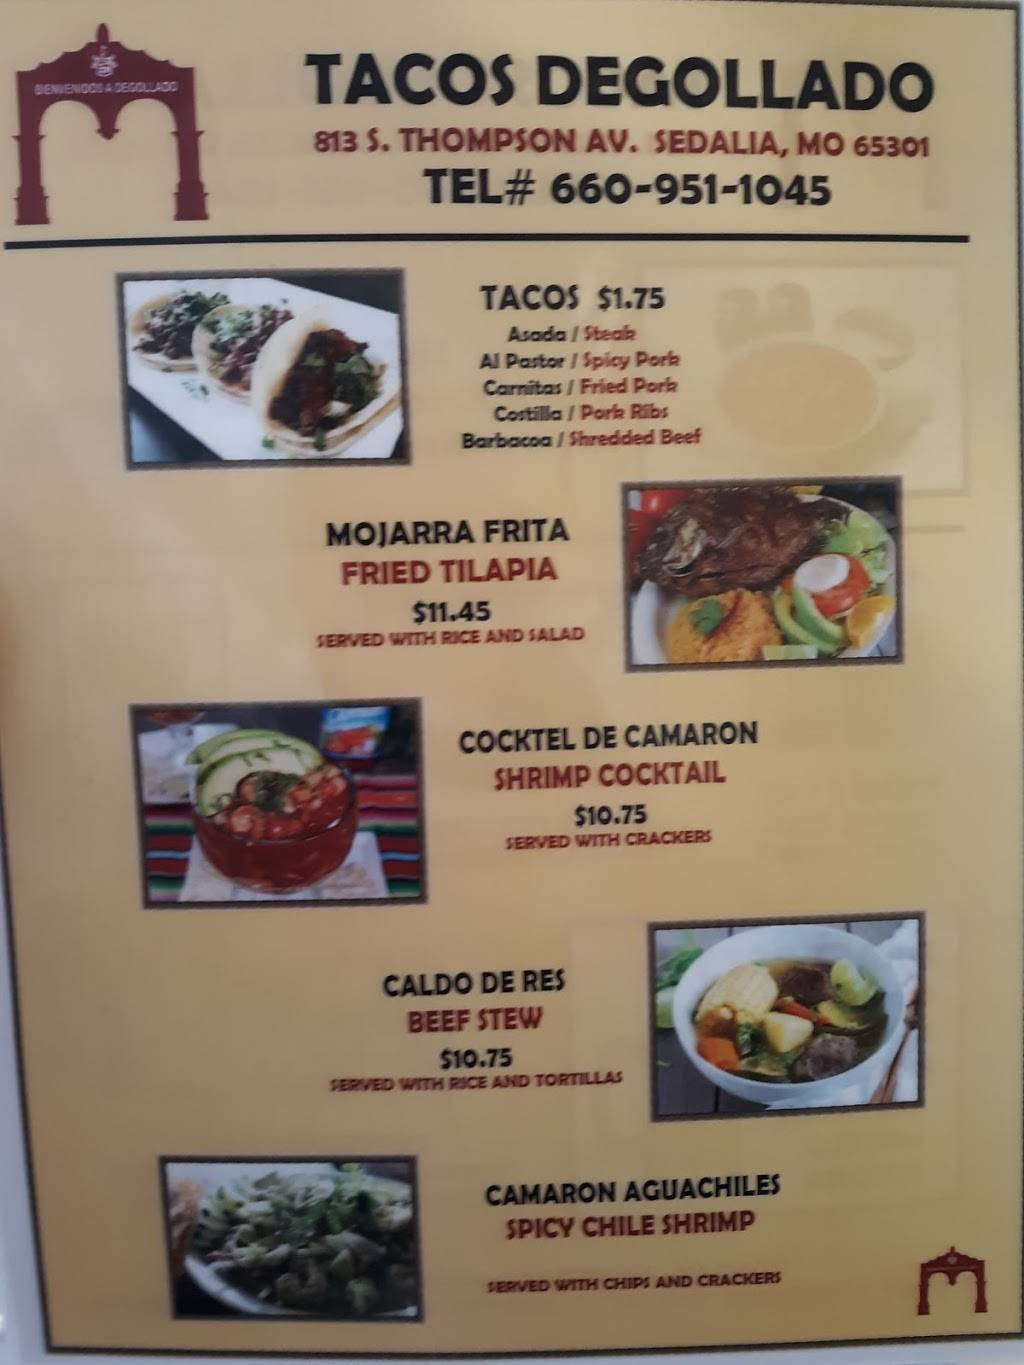 Tacos Degollado | restaurant | 813 Thompson Blvd, Sedalia, MO 65301, USA | 6609511045 OR +1 660-951-1045